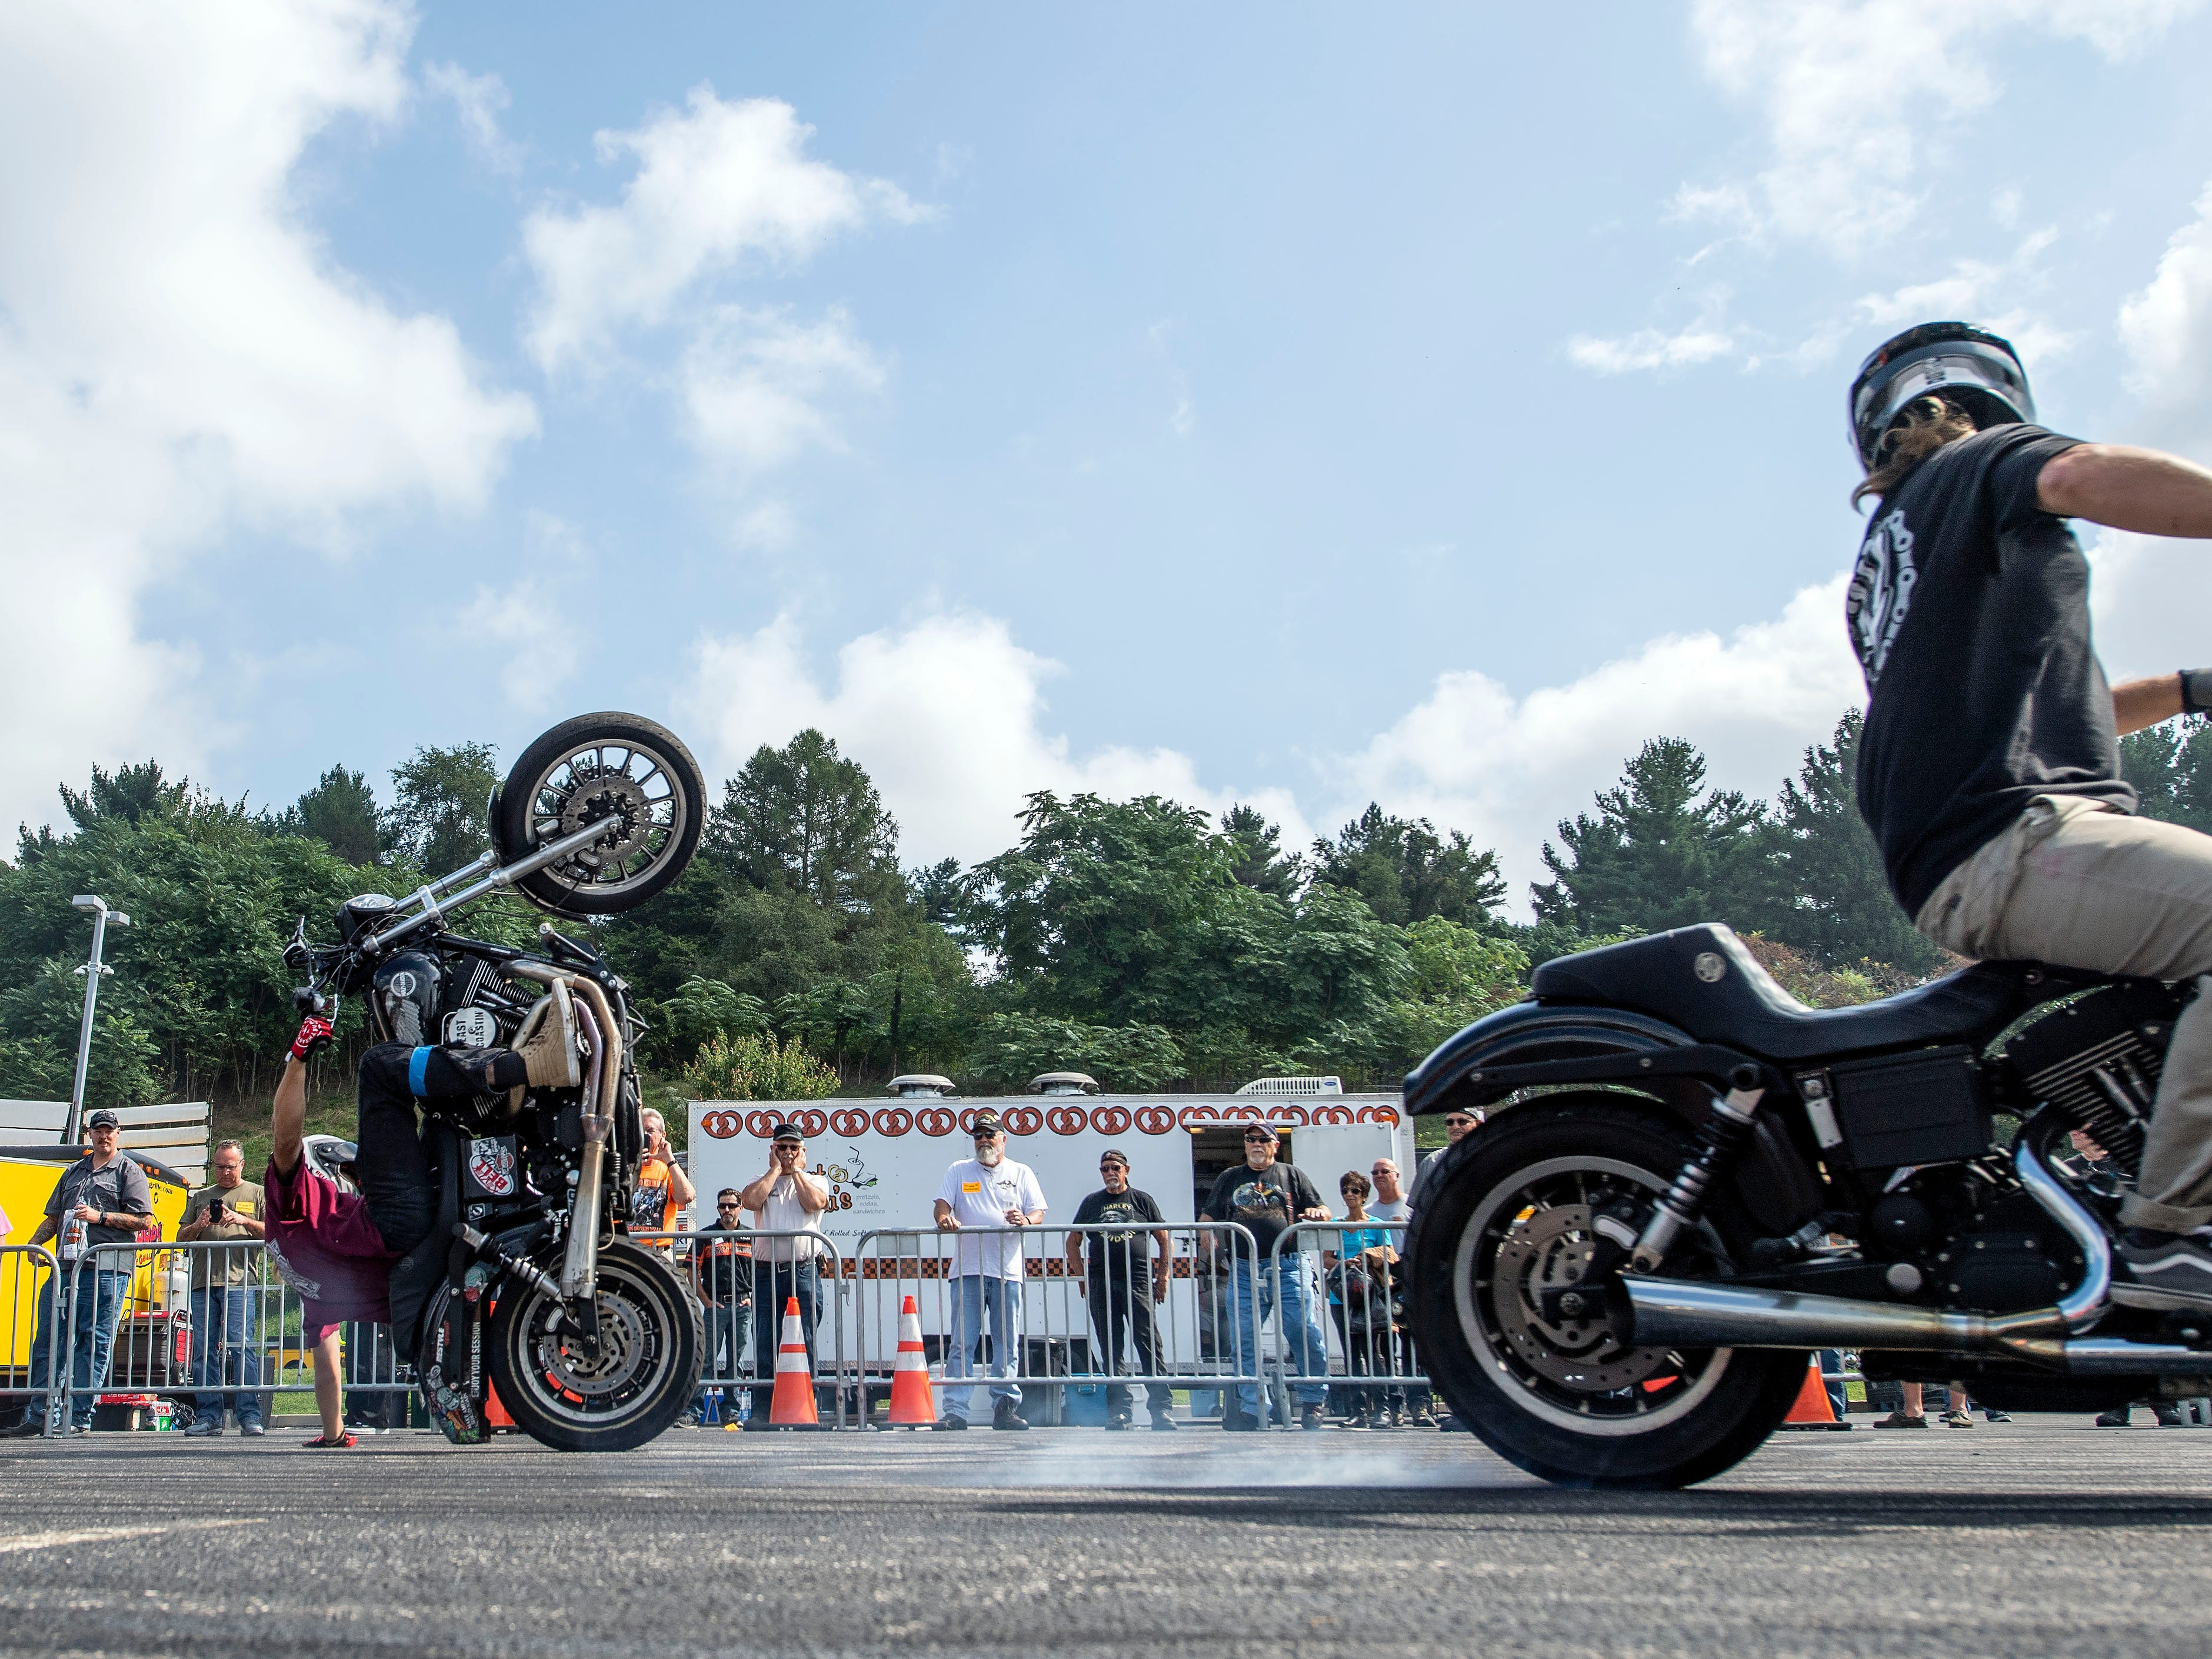 Joey Robinson does a one-handed wheely during the Ives Brothers stunt show at Harley-Davidson, Thursday, September 20, 2018. Motorcycle enthusiasts flooded into Harley-Davidson to tour the production plant, see the newest models of bikes and watch stunt shows to lead up to the 24th annual York Bike Night, on Sept. 22.